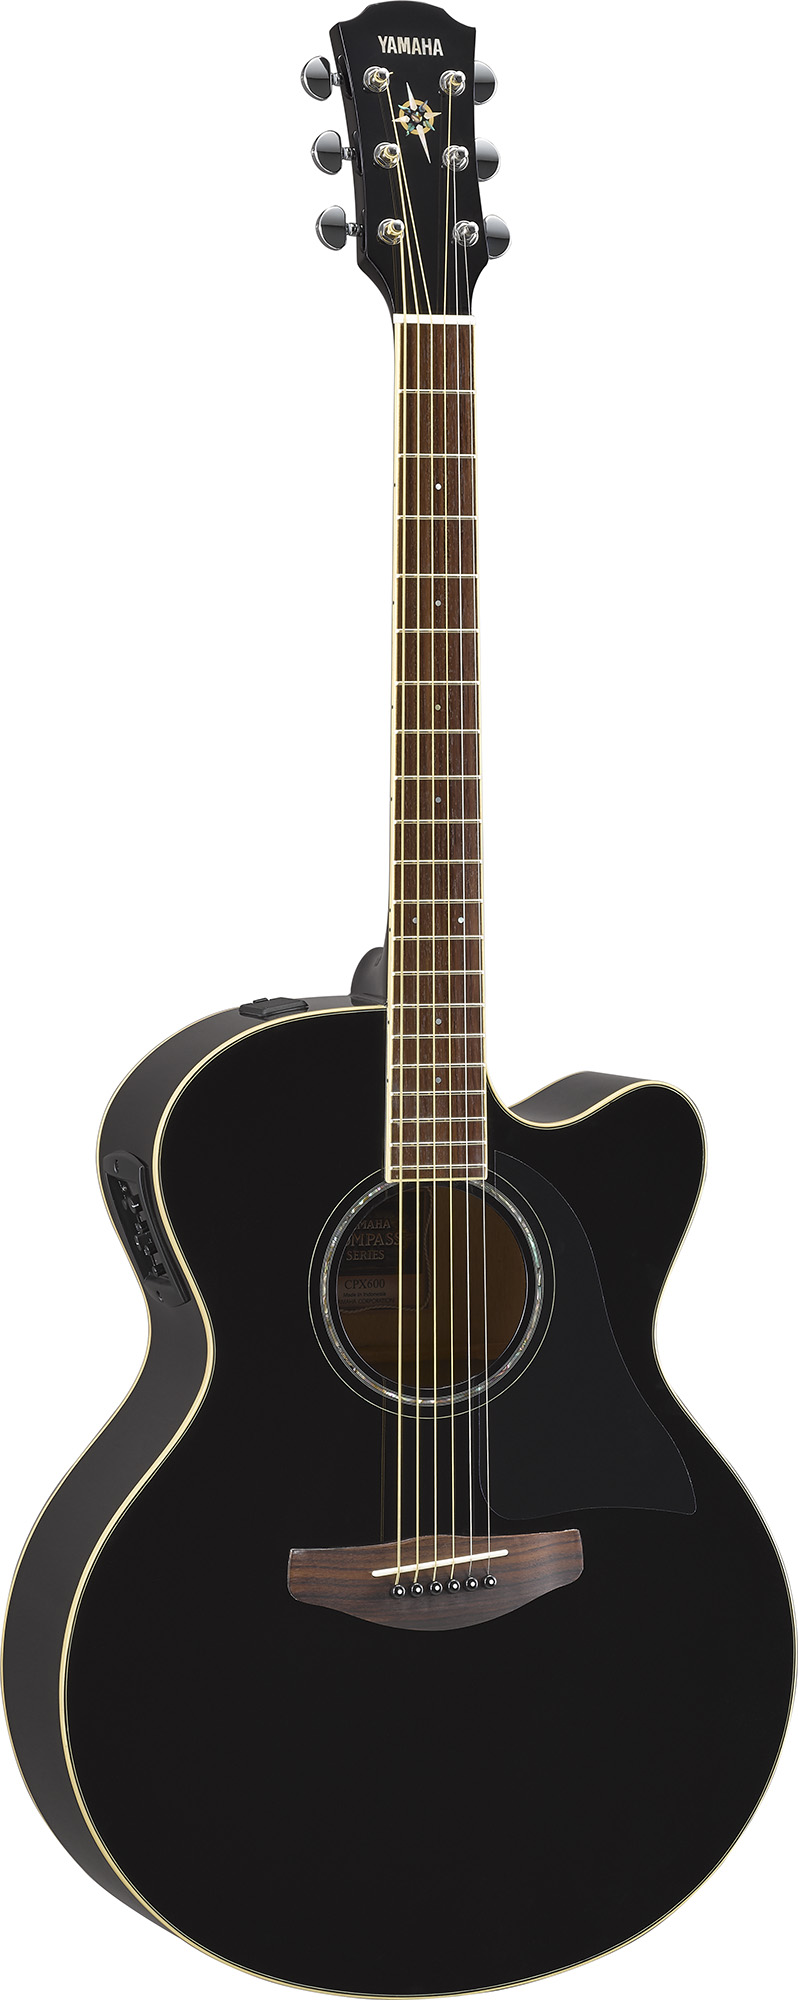 Yamaha announces new apx600 and cpx600 acoustic electric for New yamaha acoustic guitars